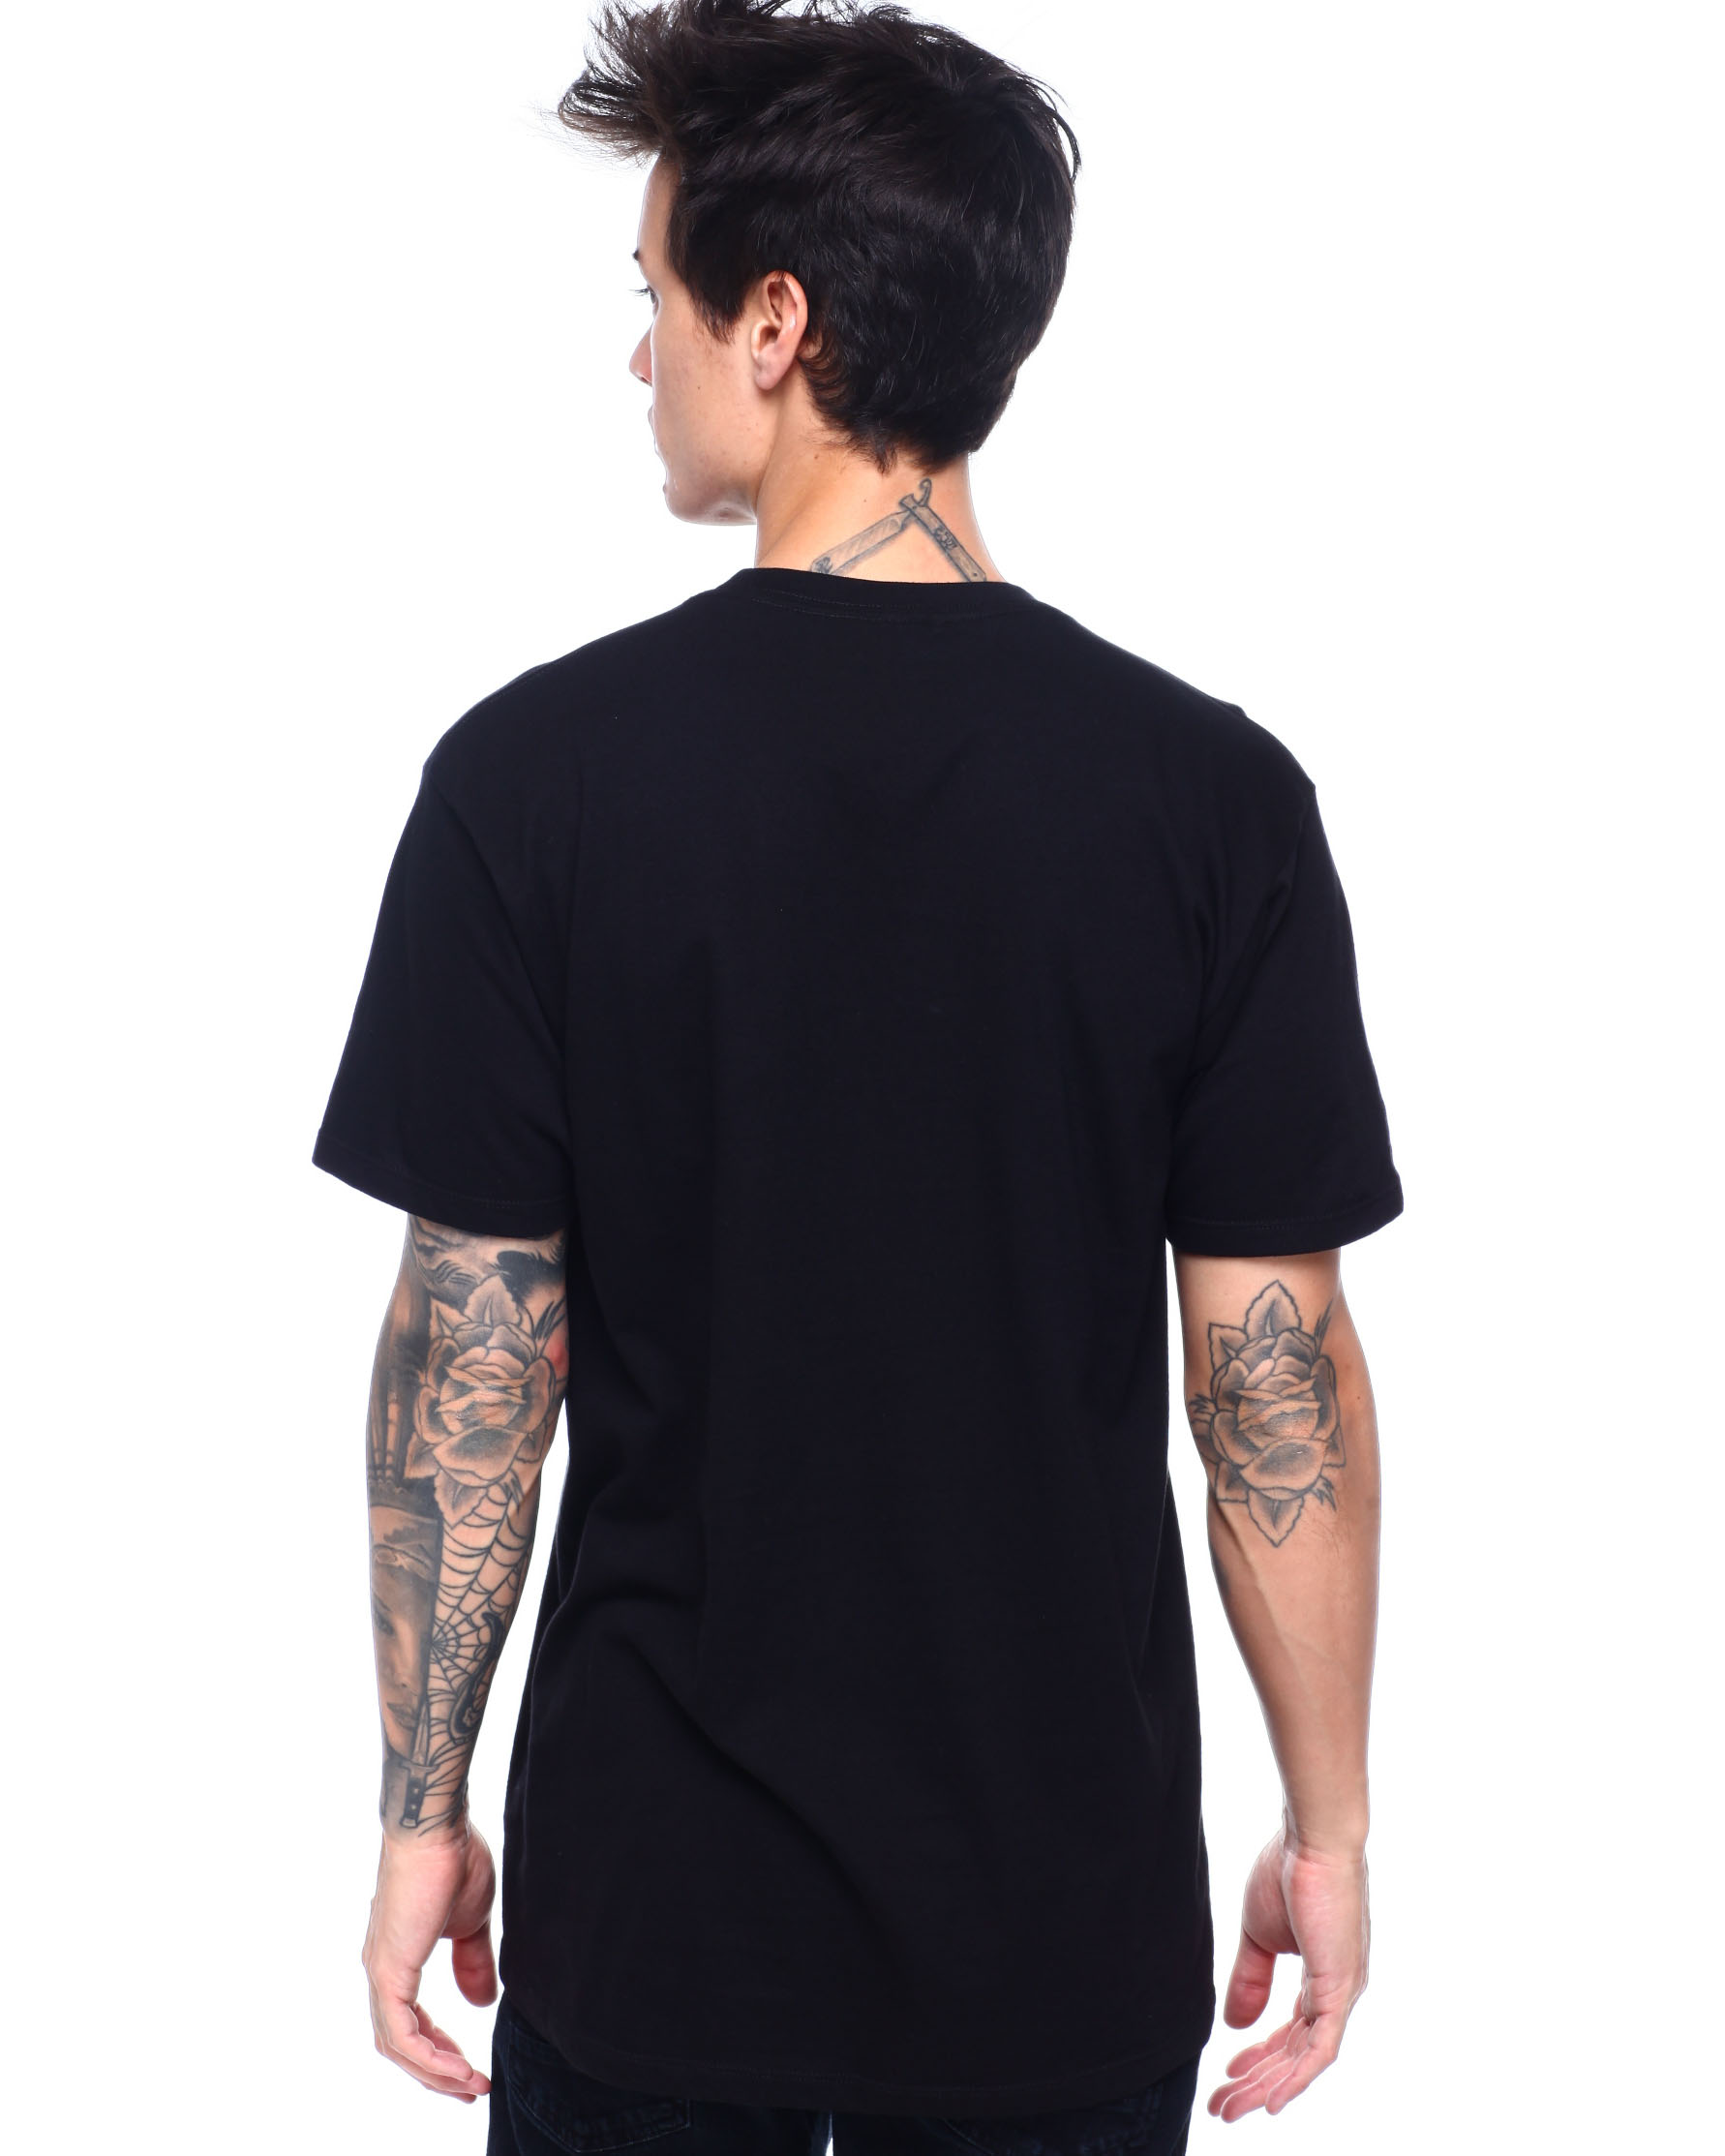 Buy 90s Baws Tee Men's Shirts from BAWS LIFE  Find BAWS LIFE